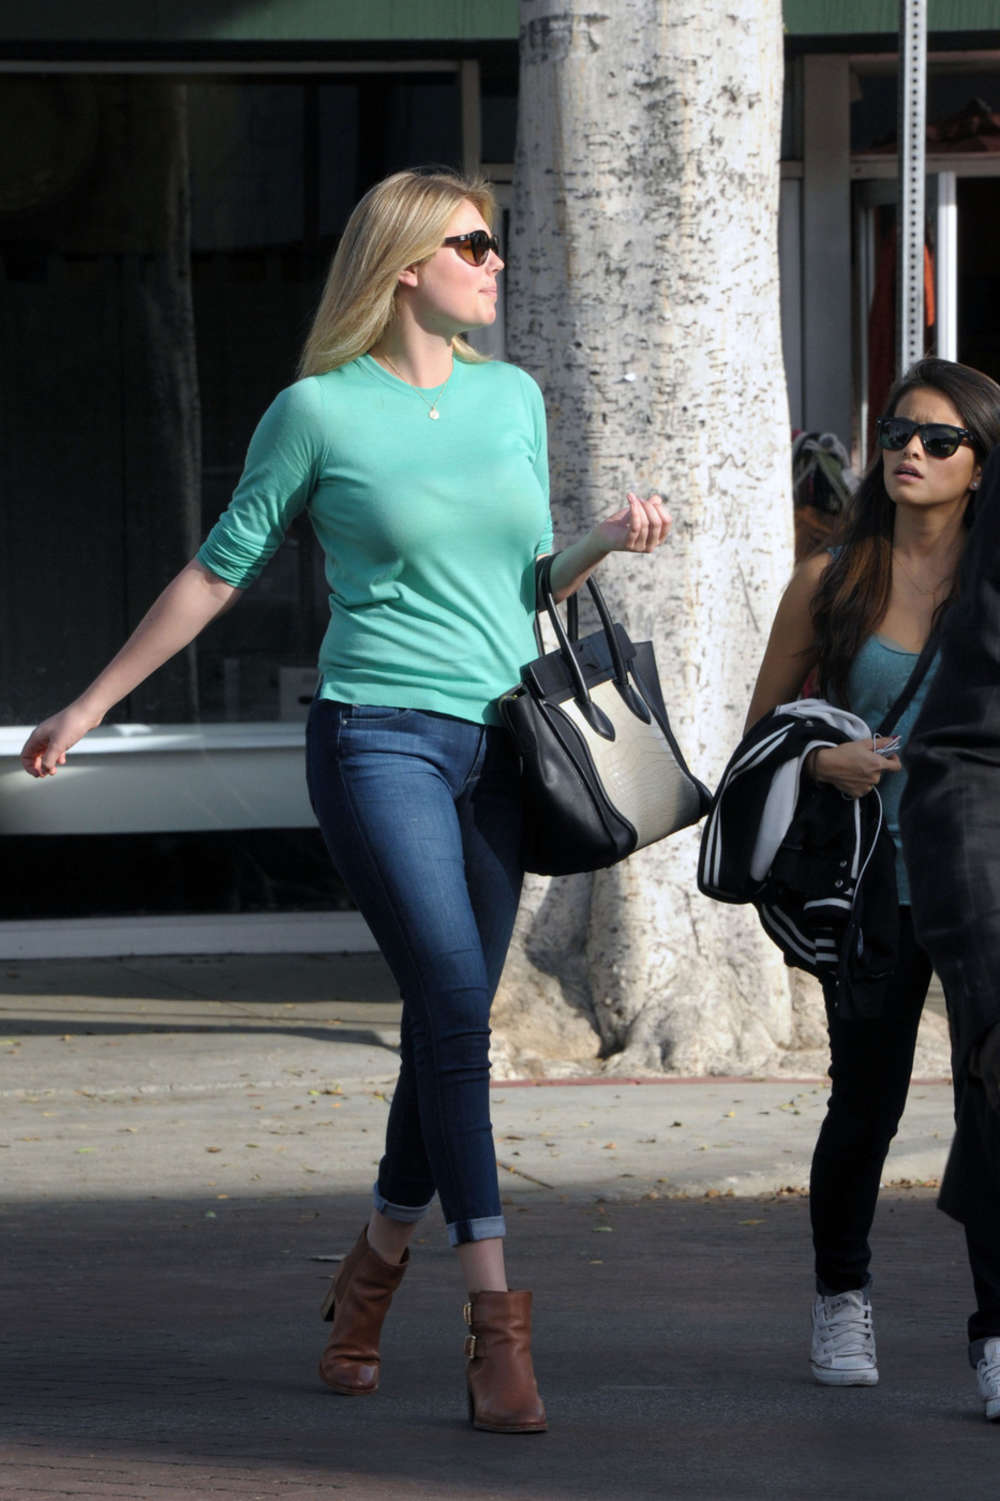 Kate Upton in Tight Je... Hilary Duff